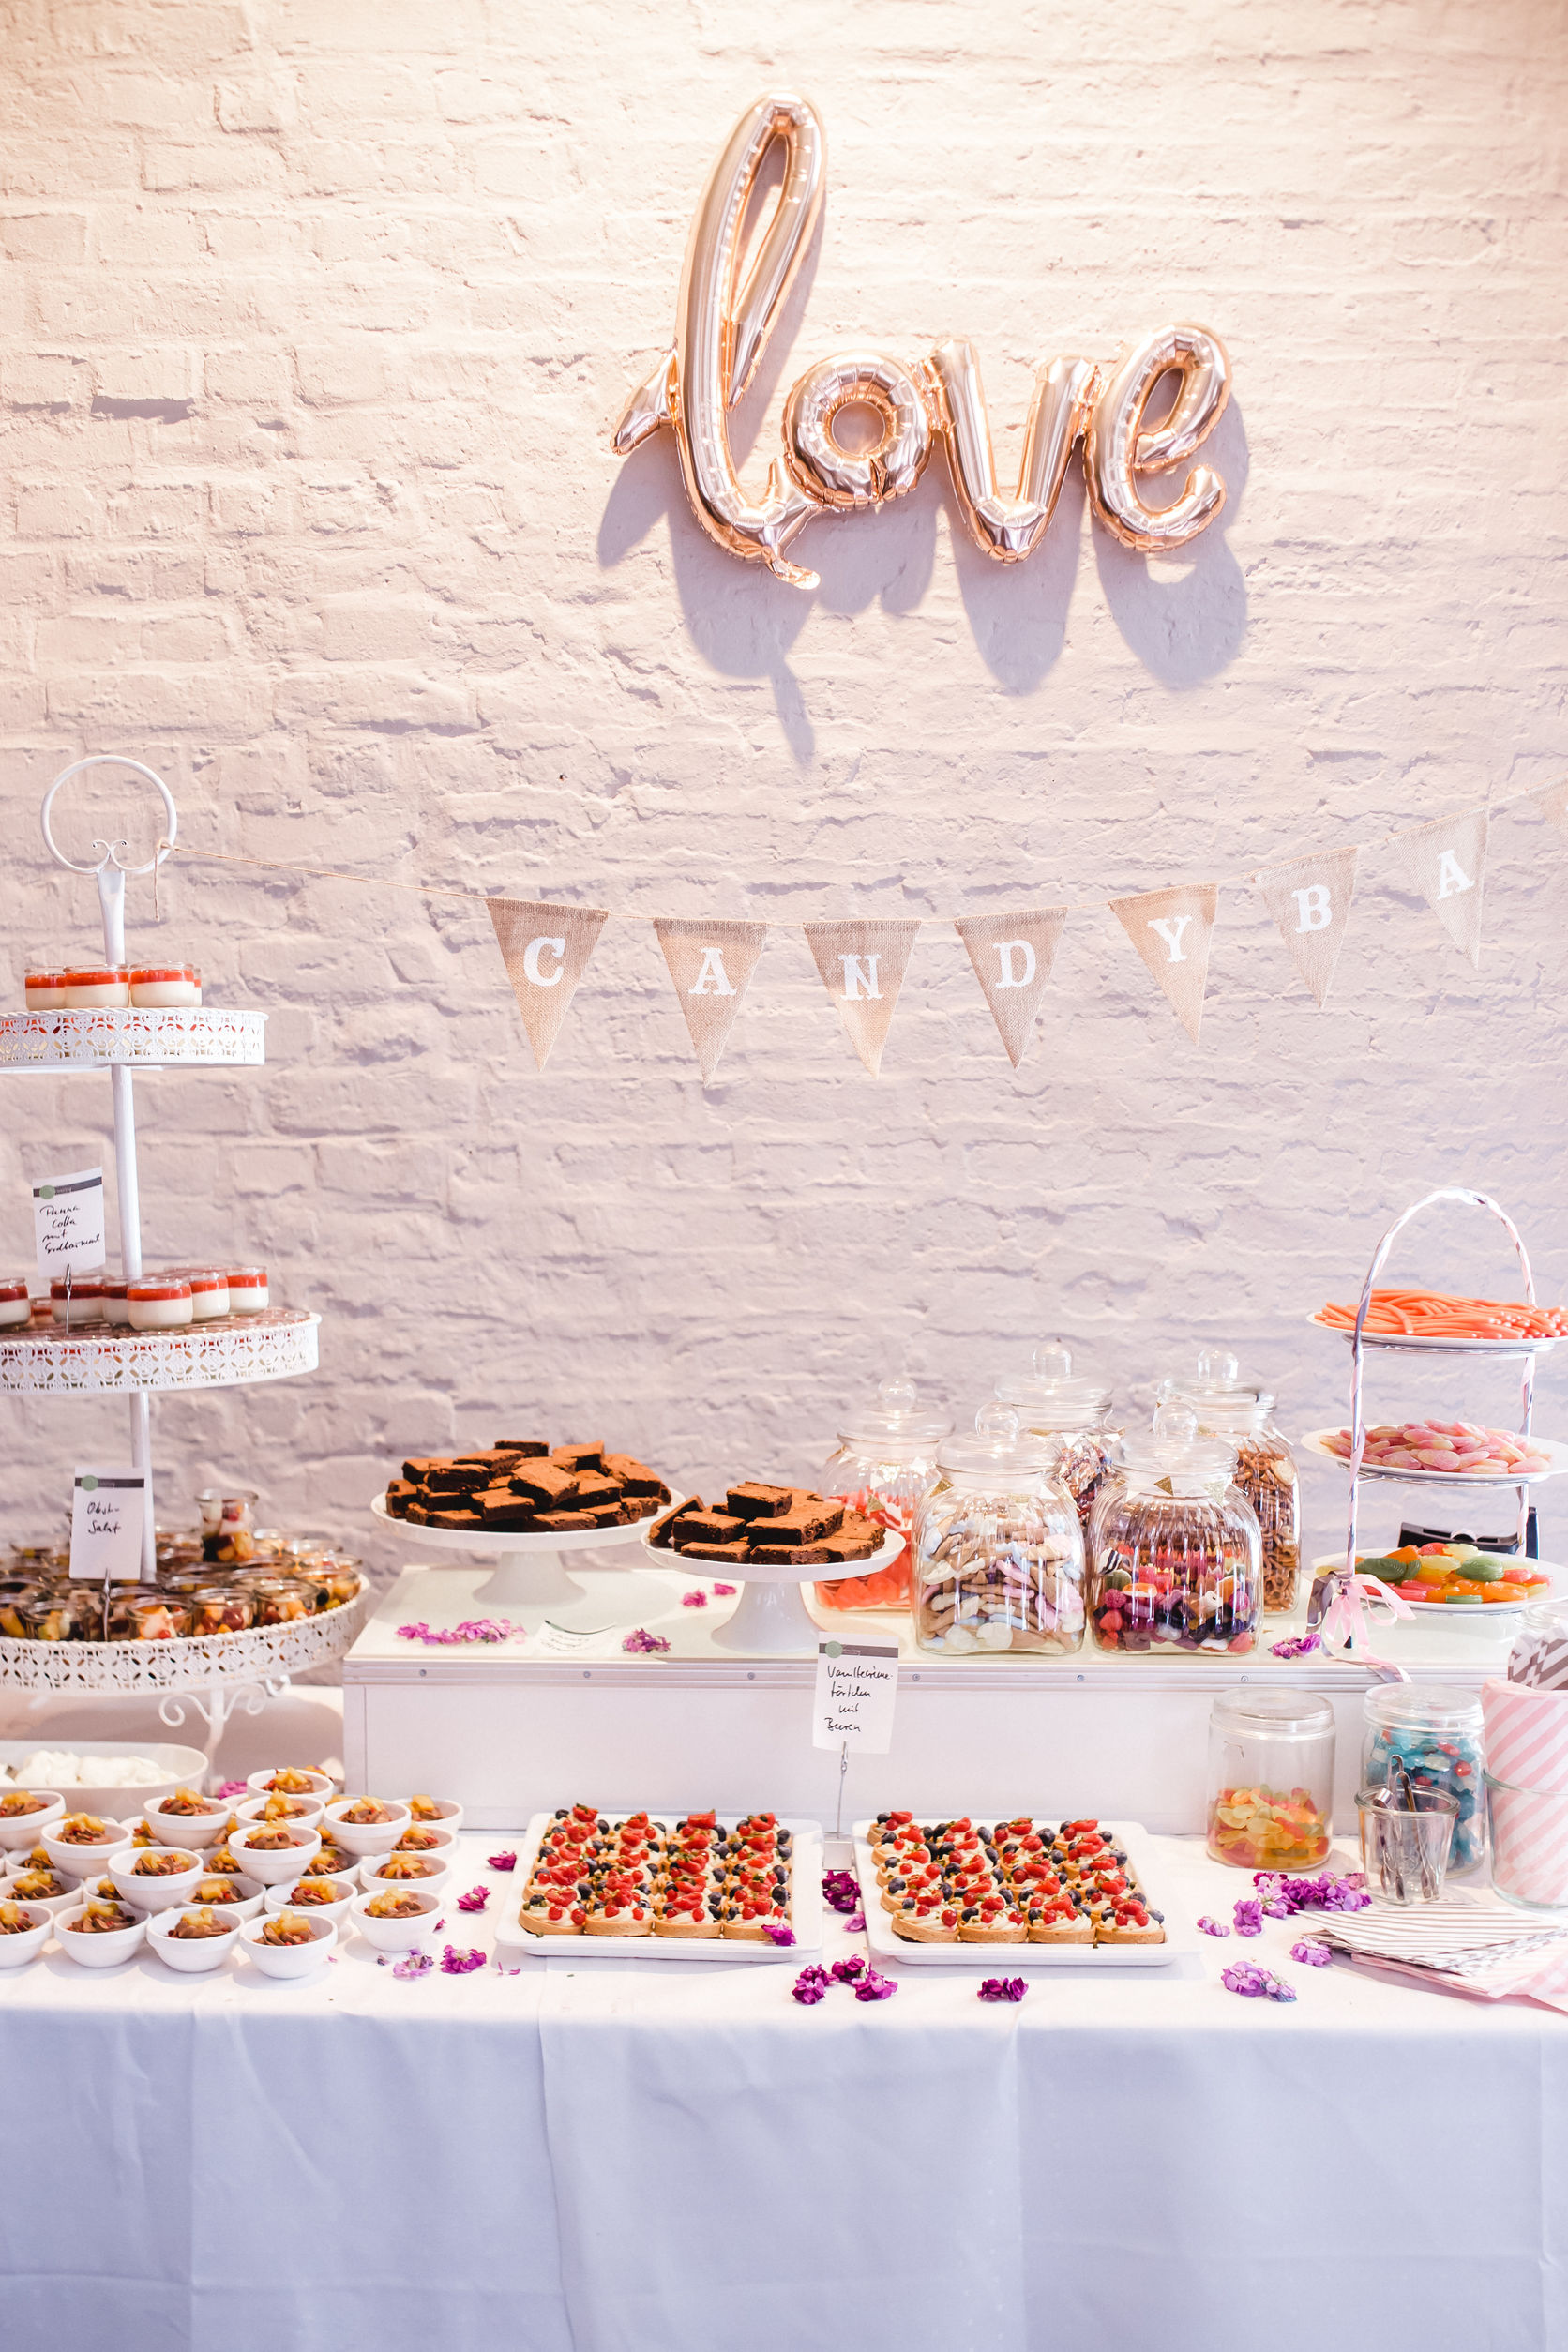 Events Beyond Event Planning | NYC Candy Bar | Sweets and Treats Display | Candy Bar | Dessert Tables | Candy Buffet | Cake | Dessert | Candy| Wedding Favors | Love Sweet Love | Courtney Kern | NYC Boutique Event Planning | Wedding Planning | Event Design | Creative Consulting Firm |